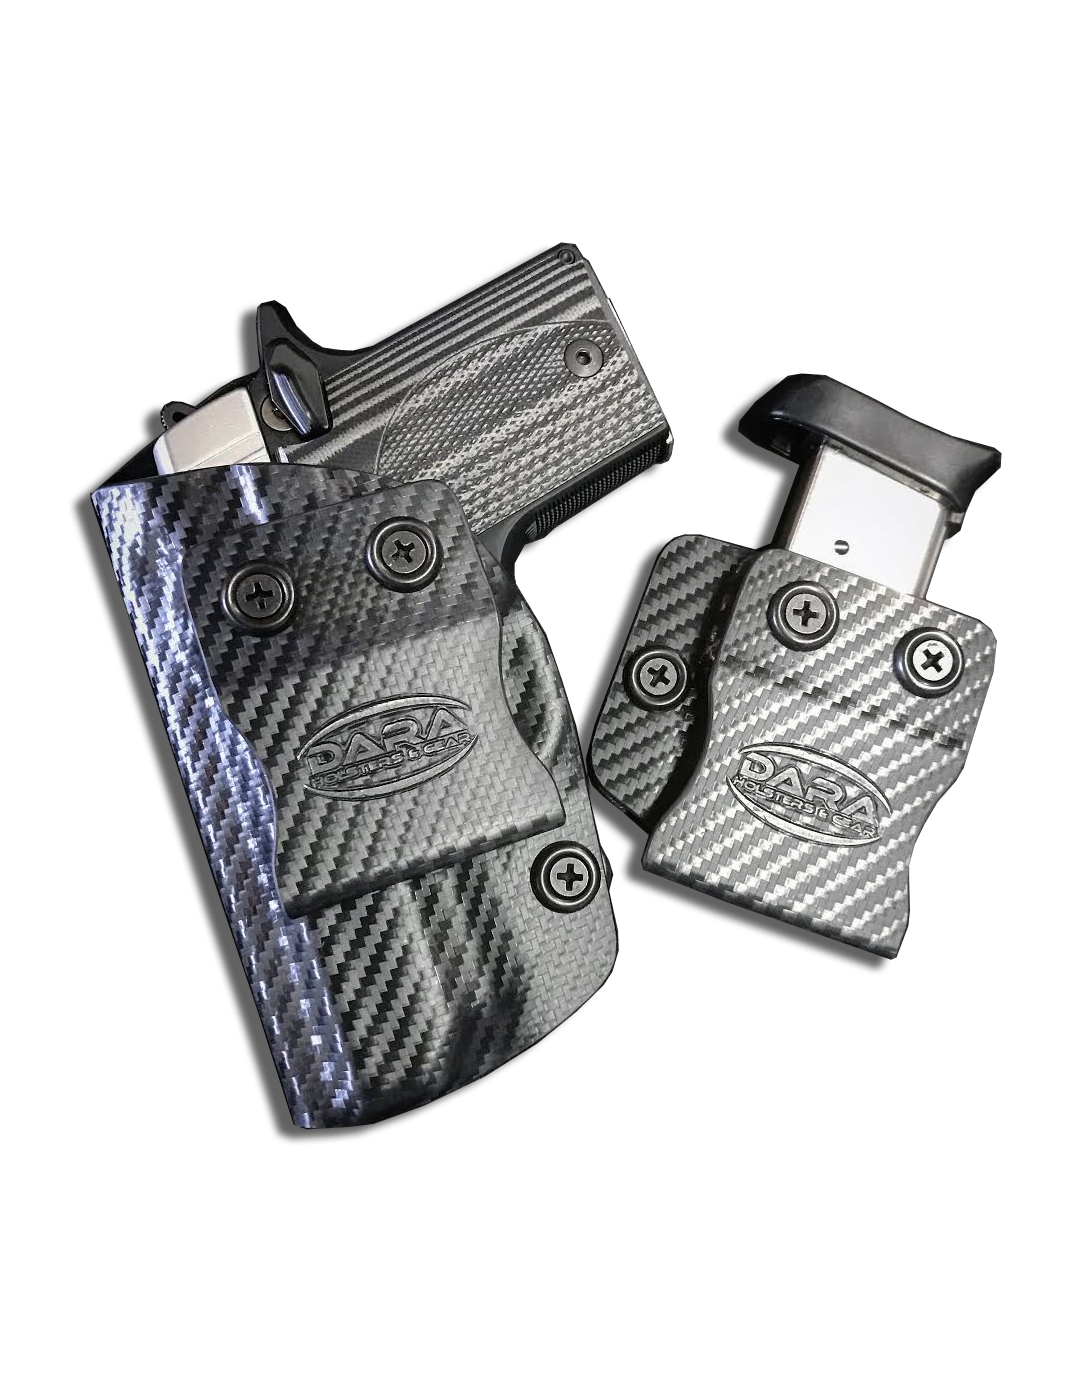 Sig P938 IWB Holster and Mag Carrier